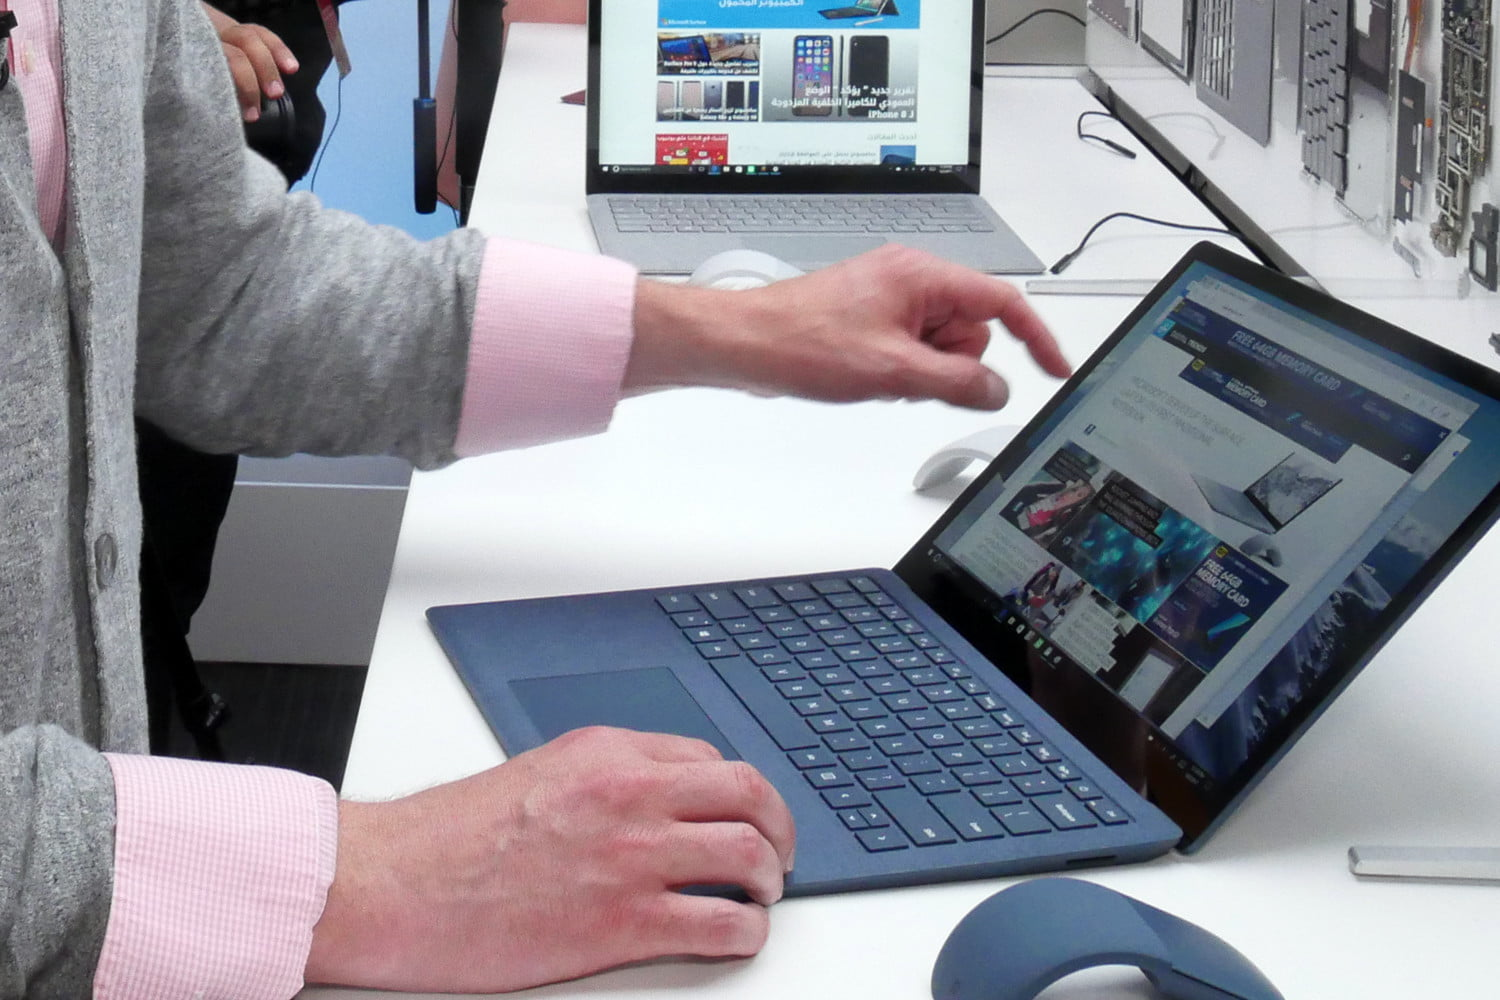 Amazon deal: Save hundreds on a Microsoft Surface Pro 6 or Surface Laptop